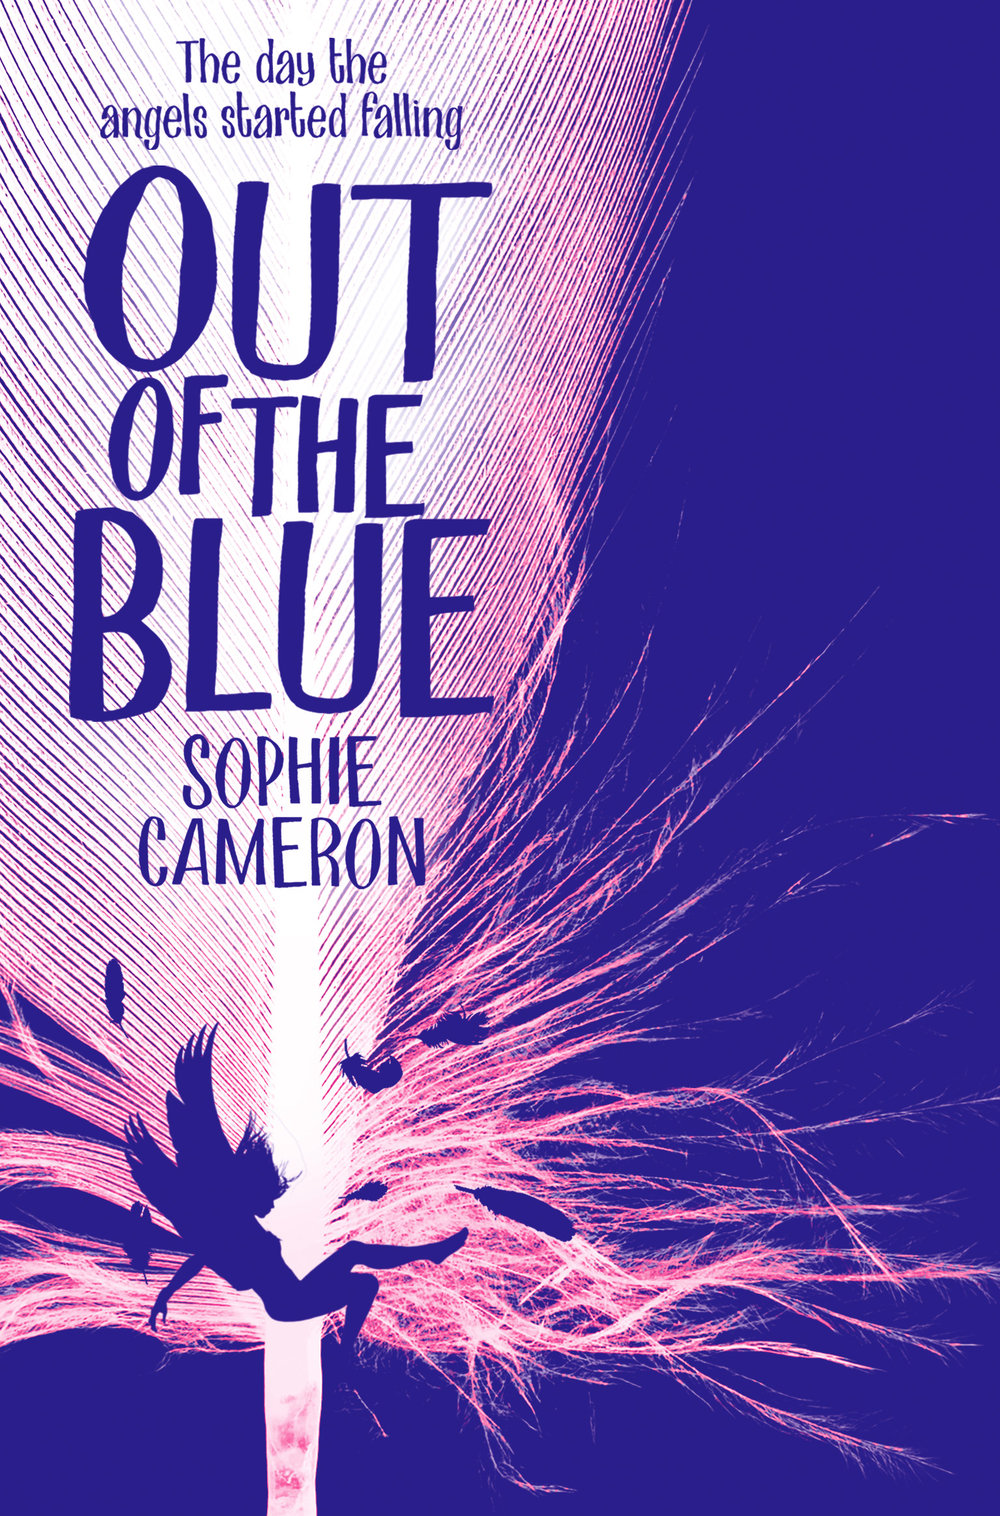 Out of the Blue UK cover.jpg